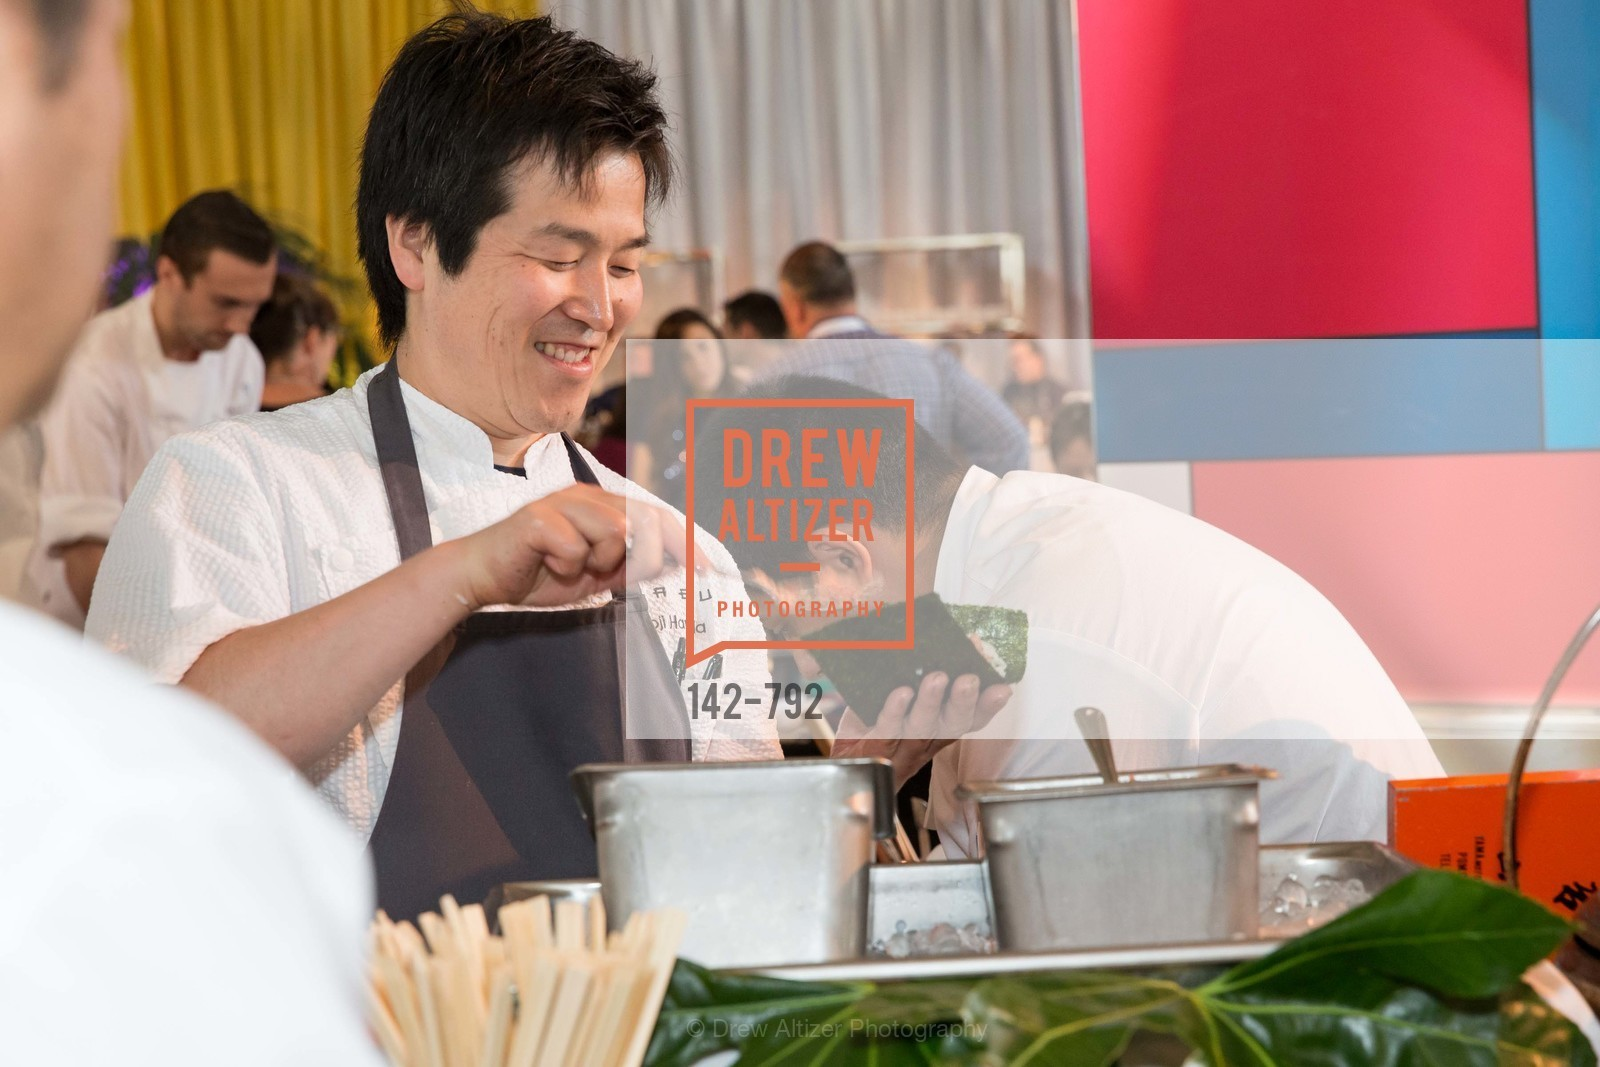 Yogi Harada, MEALS ON WHEELS OF SAN FRANCISCO'S 28th Annual Star Chefs and Vintners Gala, US, April 19th, 2015,Drew Altizer, Drew Altizer Photography, full-service agency, private events, San Francisco photographer, photographer california